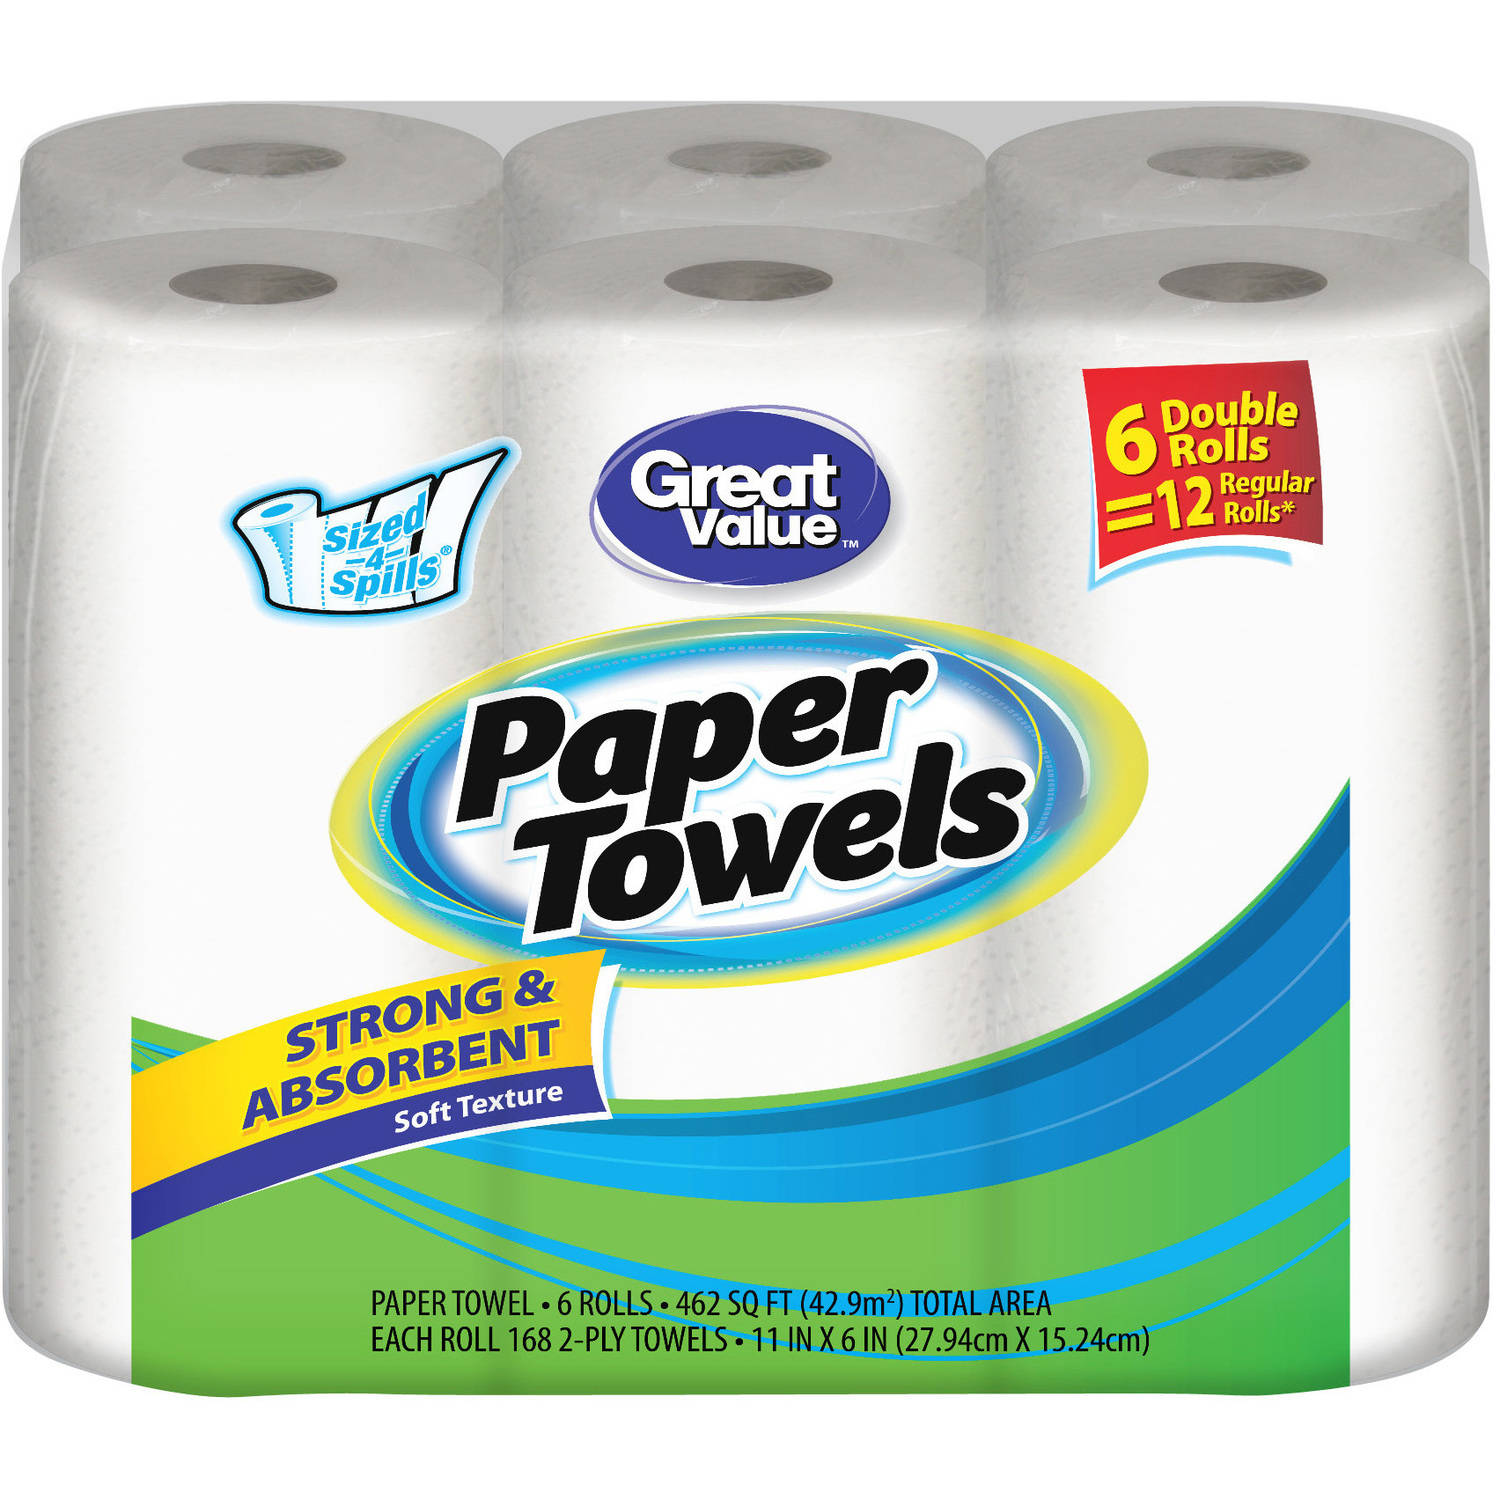 Great Value Double Rolls Sized-4-Spills White 2-Ply Paper Towels, 168 sheets, (Pack of 6)